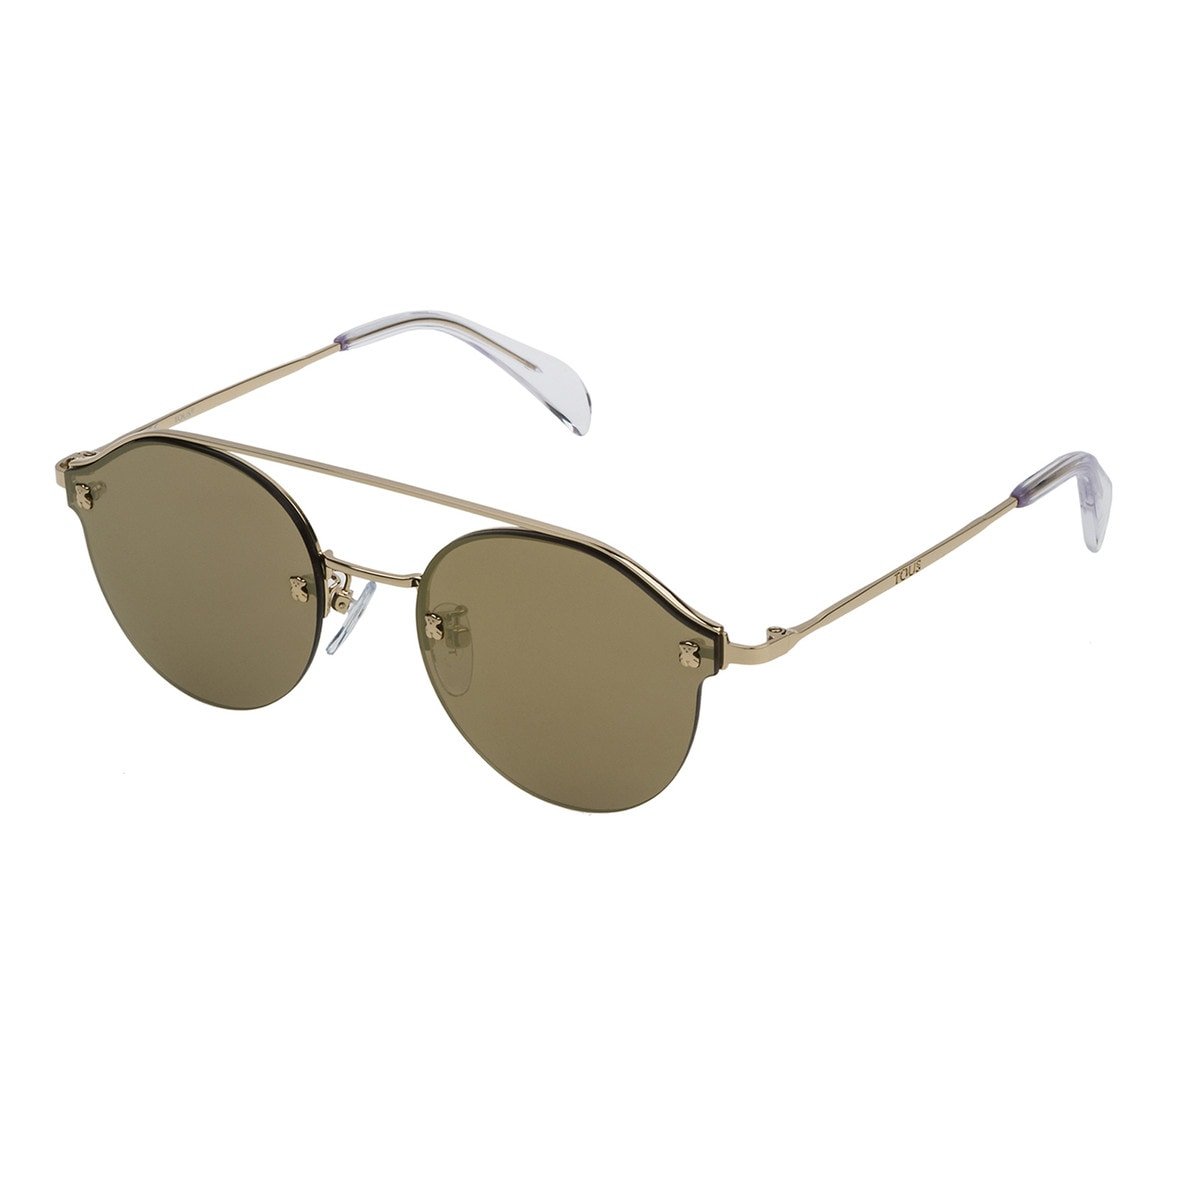 Mirror Bridge Sunglasses